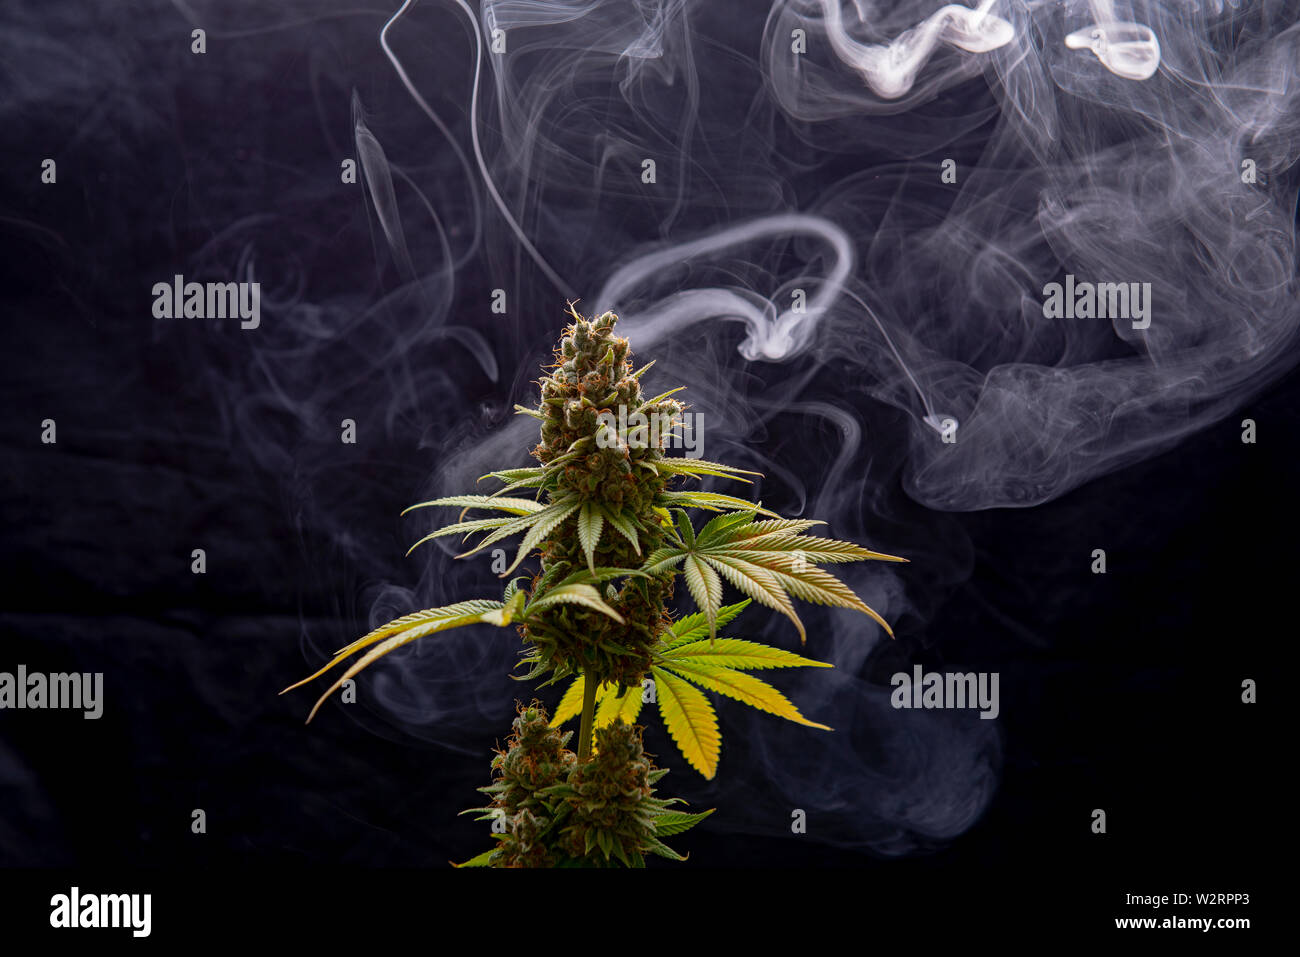 Cannabis plant in full bloom with smoke isolated over black background, medical marijuana concept Stock Photo